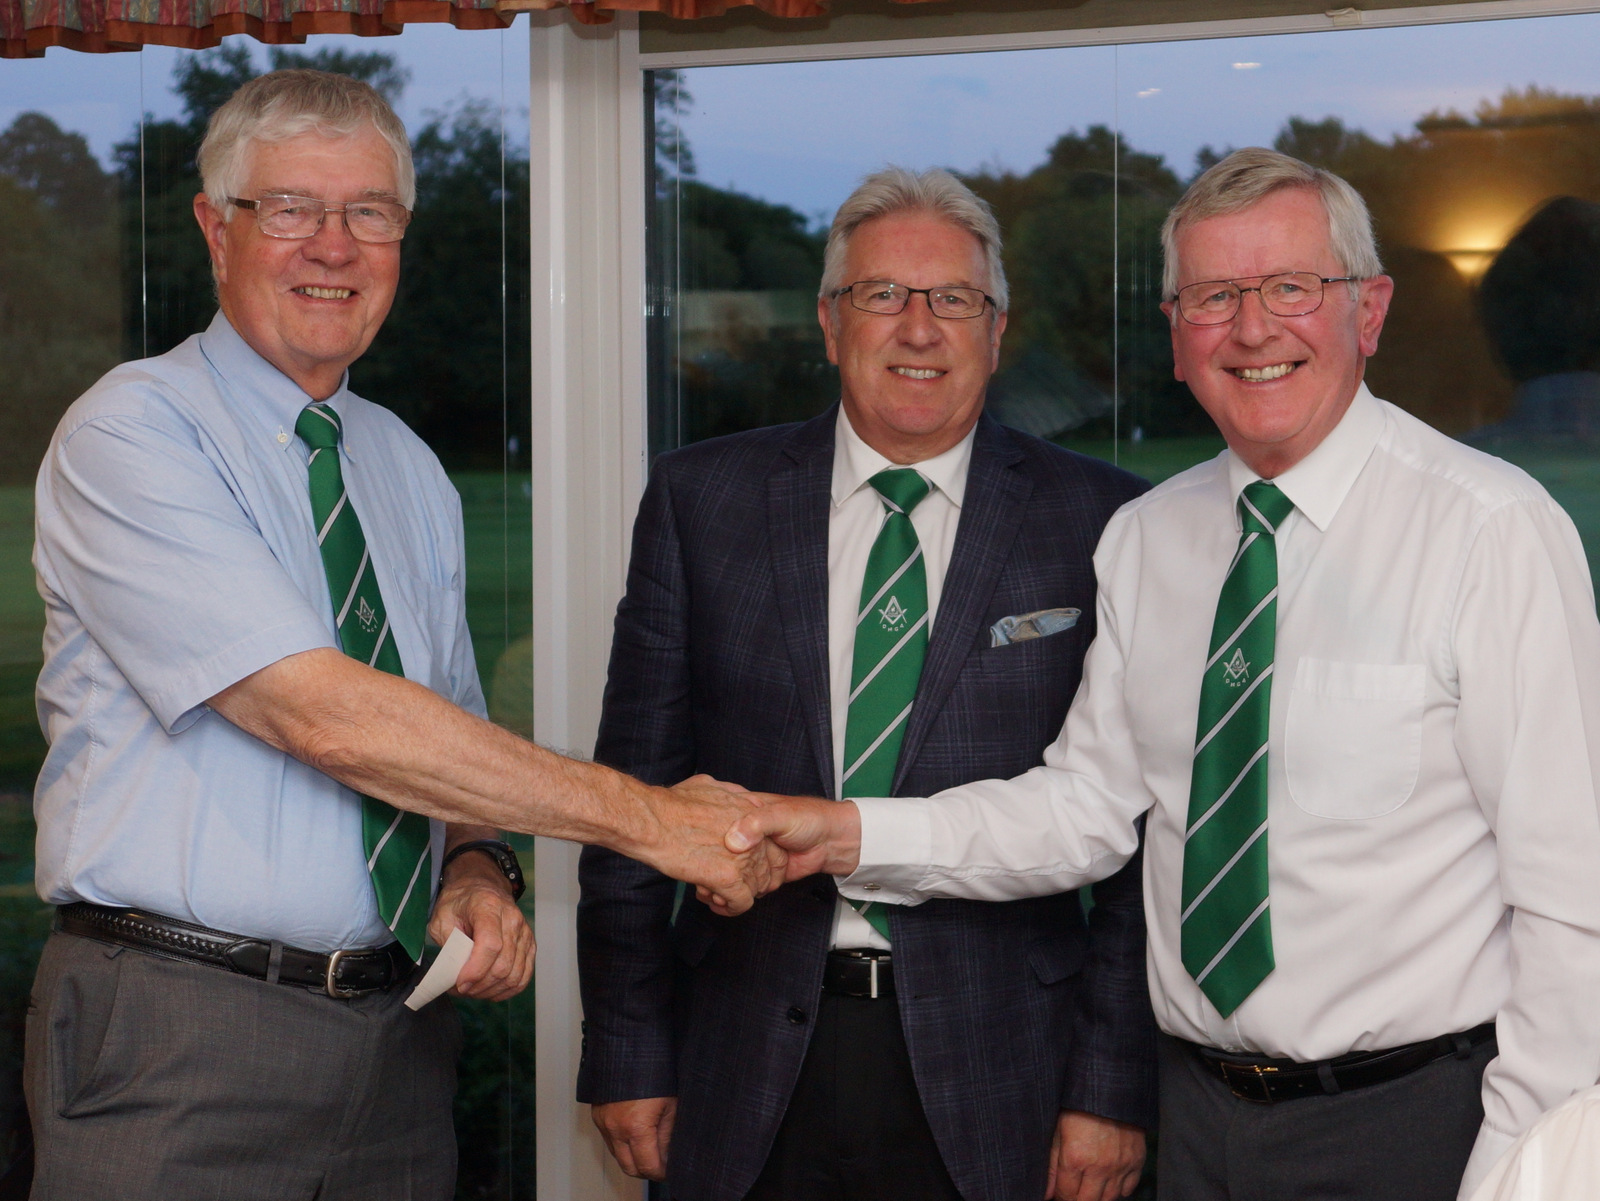 WBros David Purdie & Peter Perryman 3rd place and a cheque for charity at Devon Masonic Golf Association's Autumn Meeting